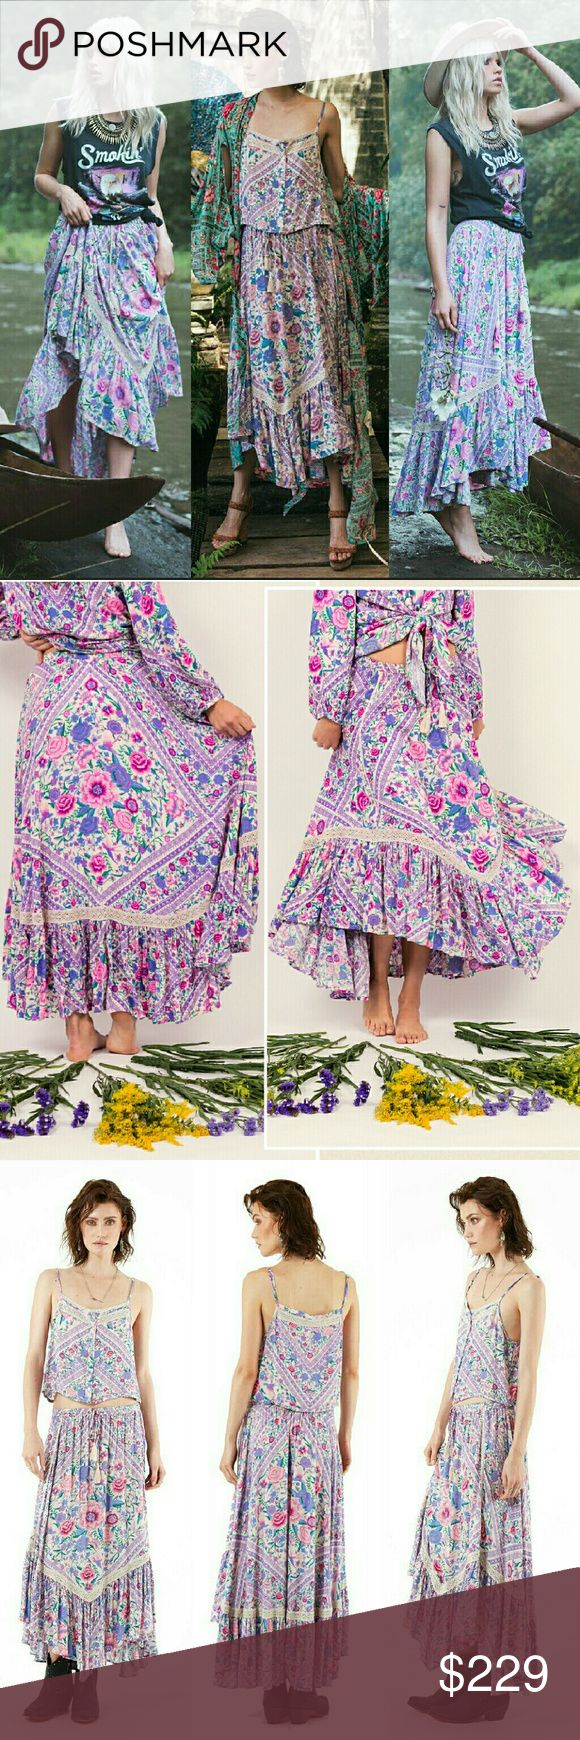 New spell designs babushka scarf maxi skirt purple Brand new with tag Babushka kerchief scarf maxi skirt in lavender wildflower floral print by spell designs & the gypsy collective. Extra Small. Features macrame crochet lace detailing with a flutter hem and a drawstring waist with tassel tie ends. No trade please. The price is firm. Price reflects high % posh fees *Don't like the price? Don't buy it & move on. All rude commenters, lowballers, & persons who advertise other websites or…